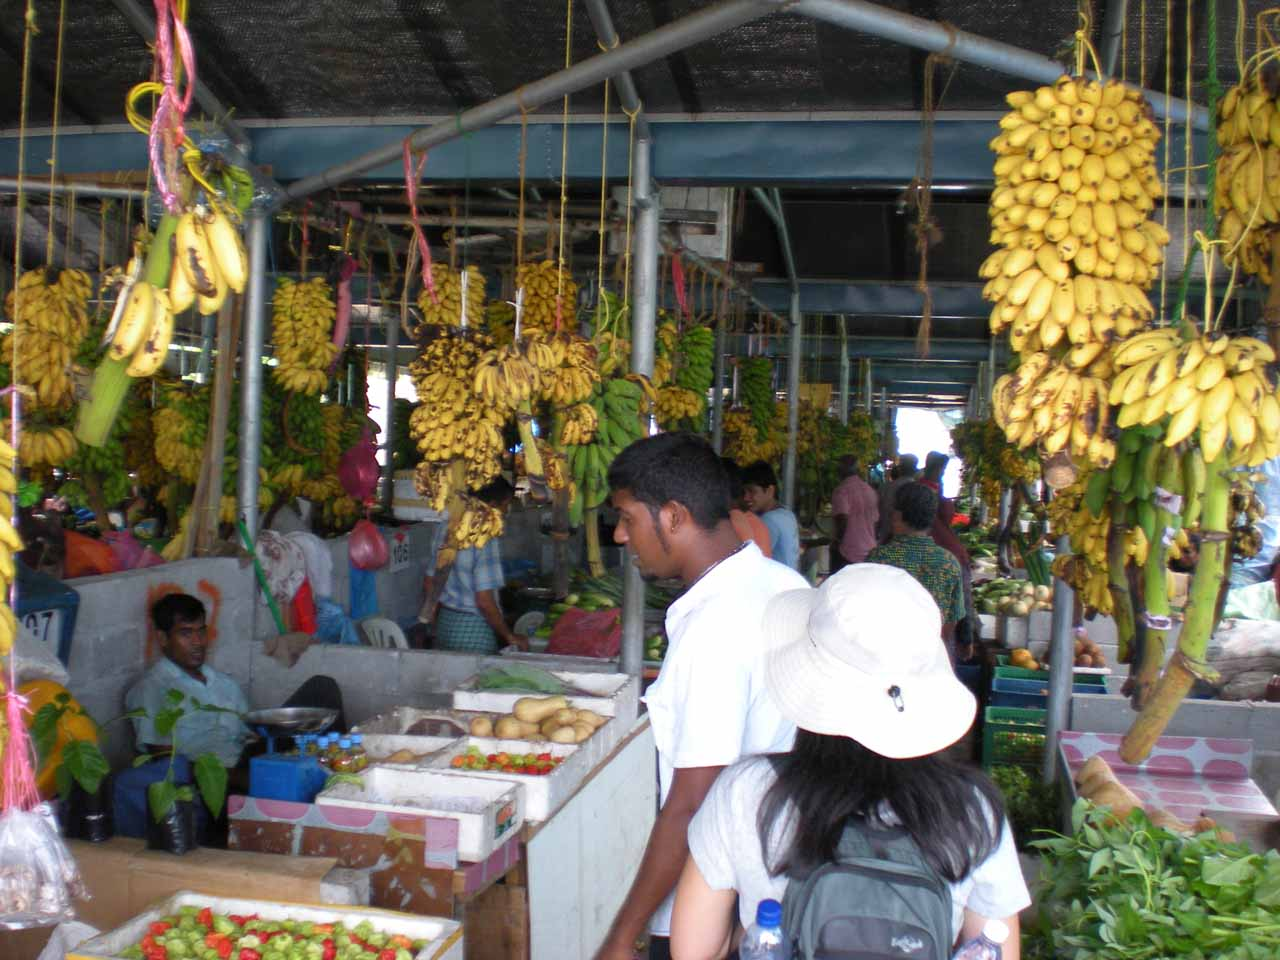 Inside the main marketplace of Male